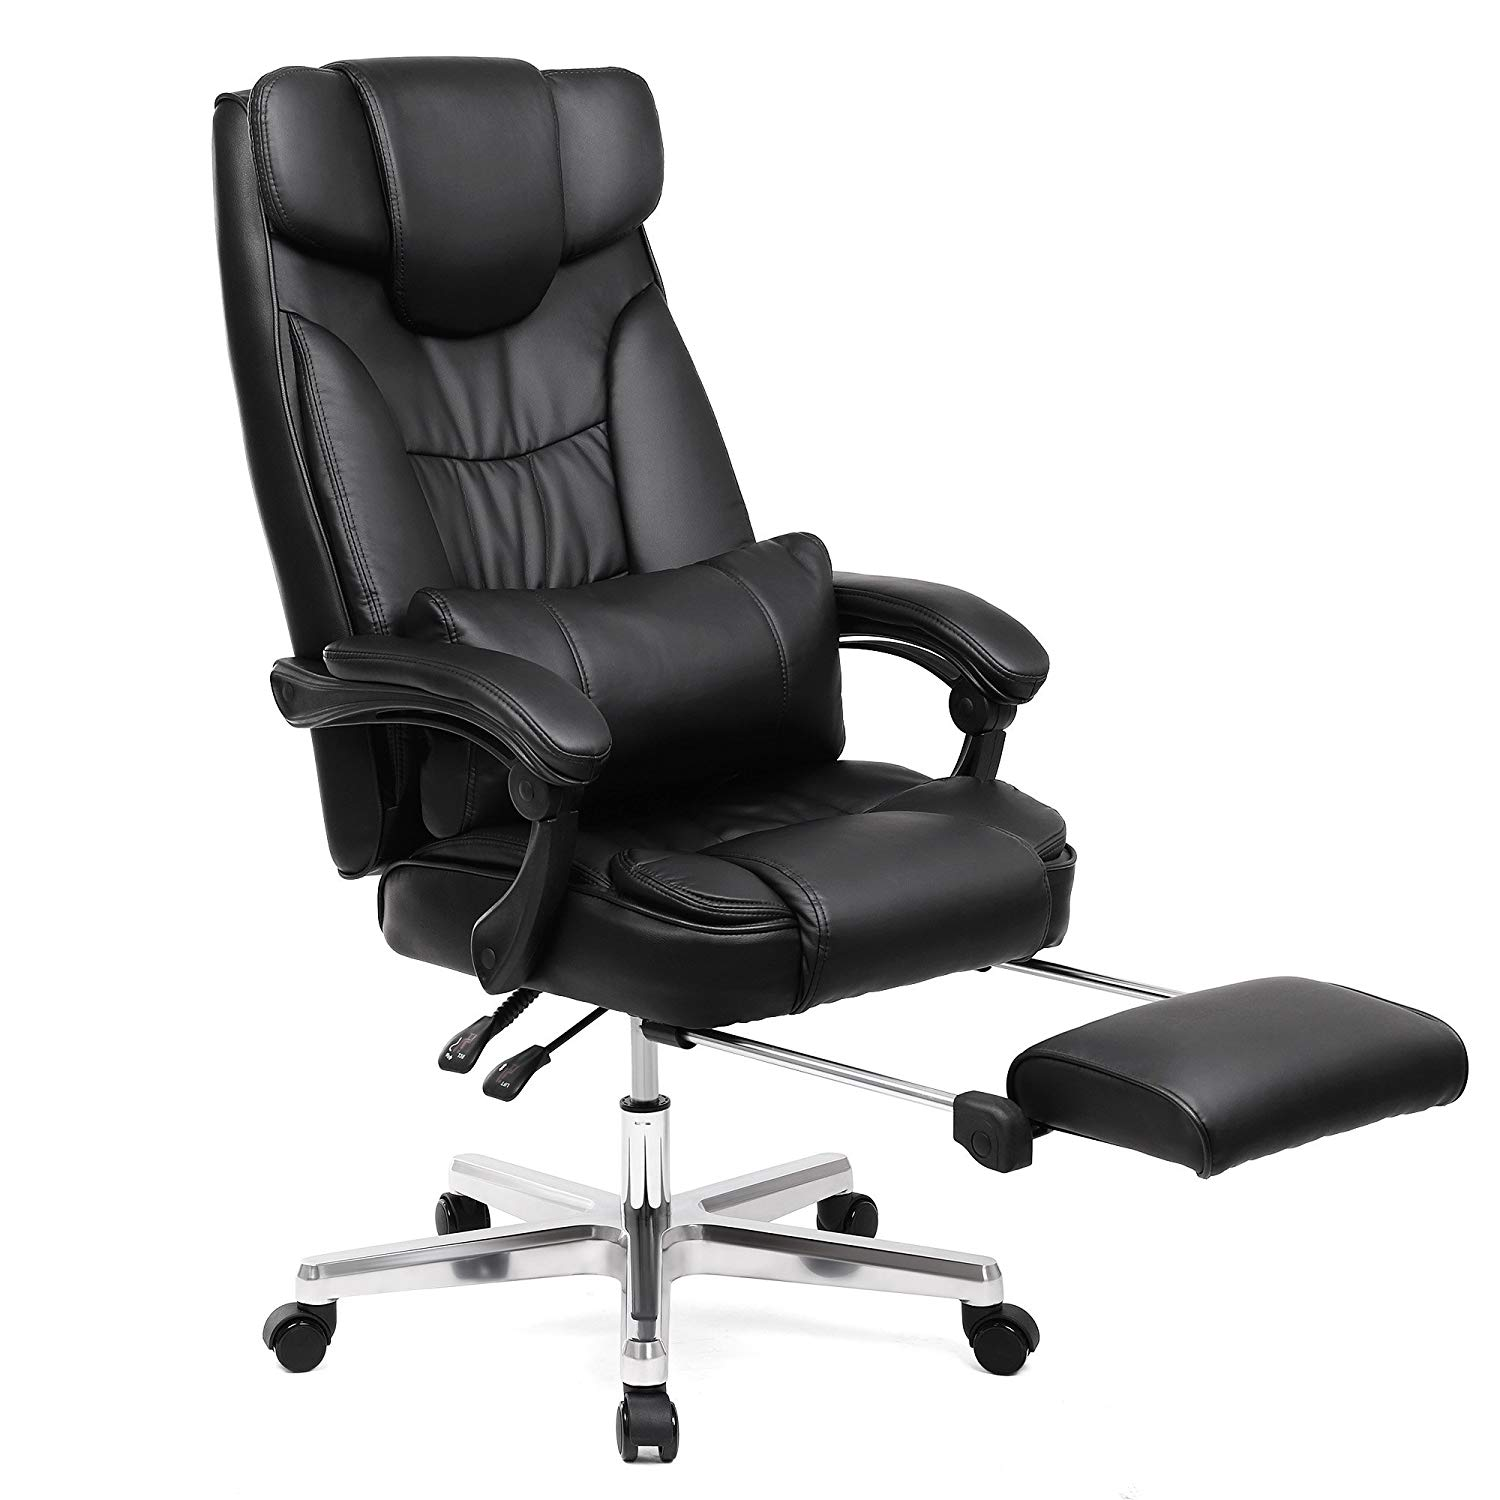 Gaming Chair For Big Guys Best Gaming Computer Chairs Top 26 Handpicked Chairs